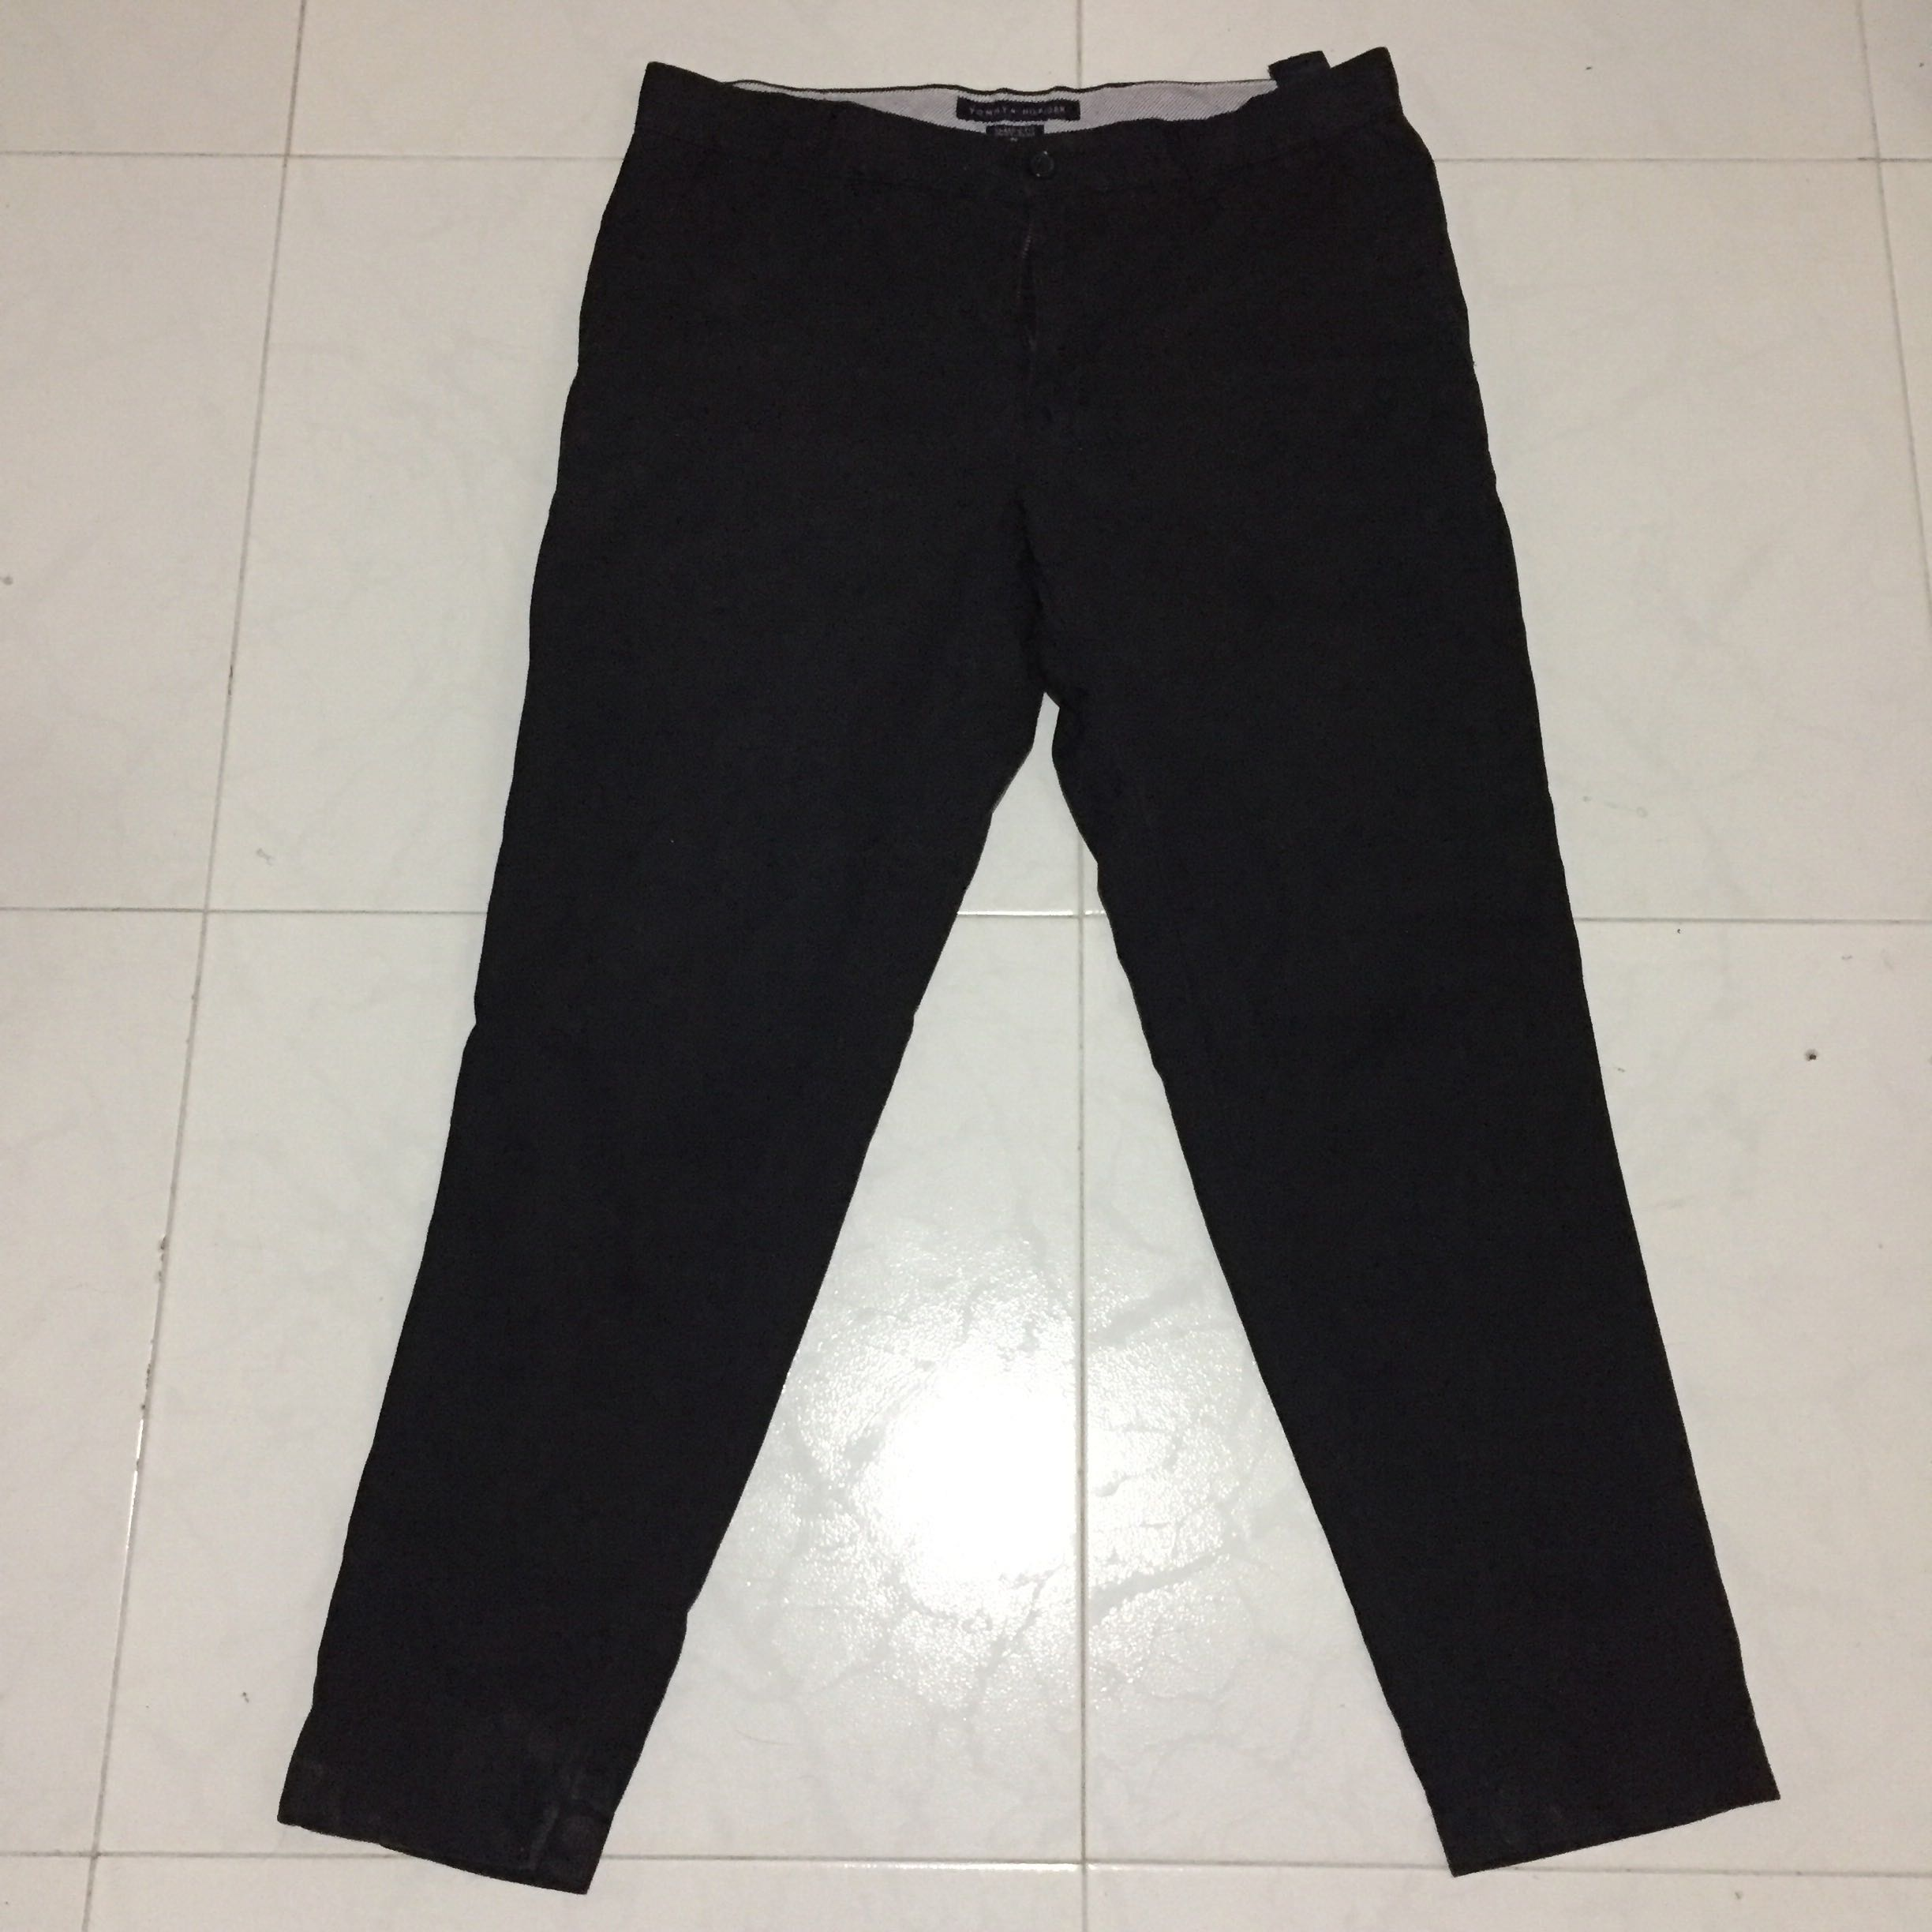 eb1c2bd75 Tommy Hilfiger Black Pants, Men's Fashion, Clothes, Bottoms on Carousell